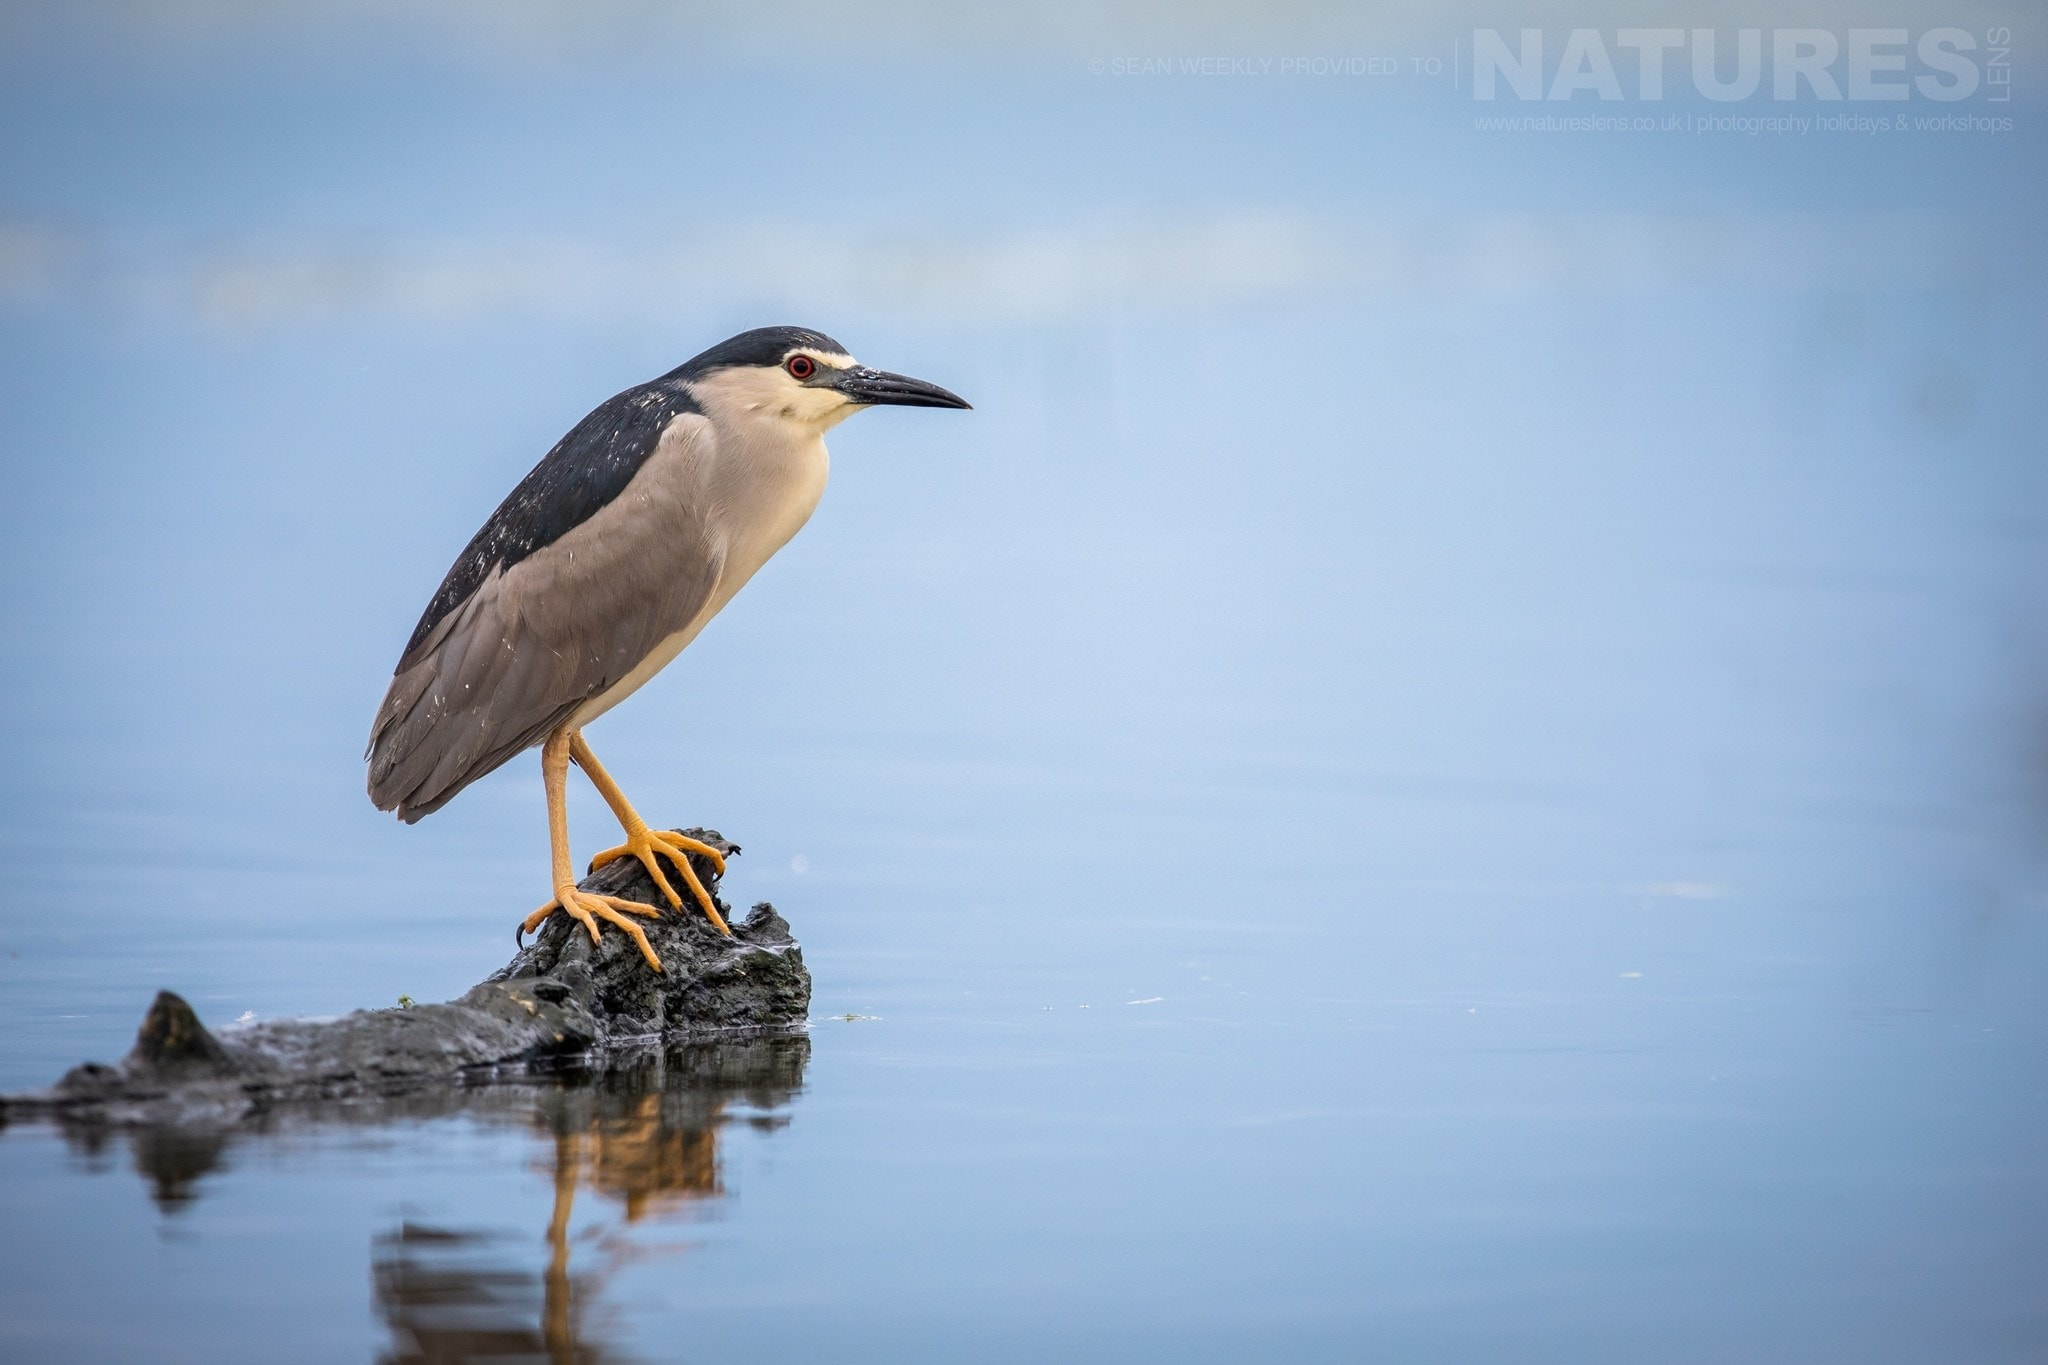 One Of The Black Crowned Night Herons Of Lake Kerkini   Photographed During The NaturesLens Spring Birds Of Lake Kerkini Photography Holiday